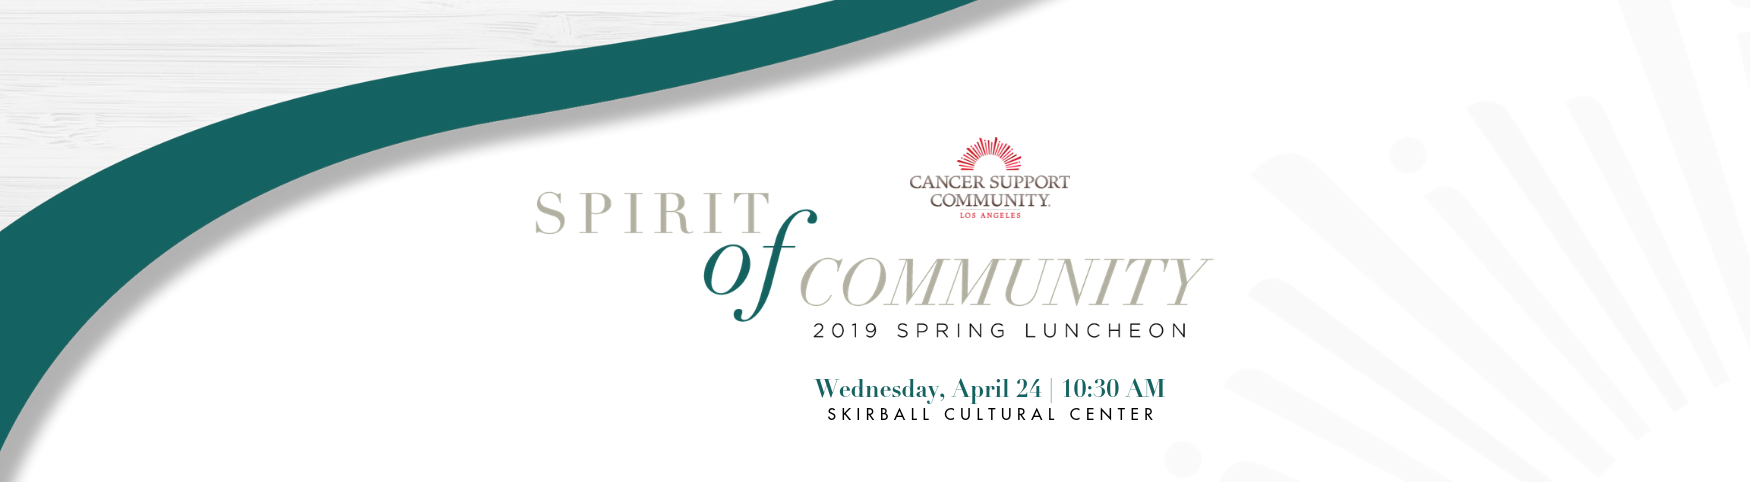 2019 Spirit of Community Luncheon on Wednesday, April 24 at 10:30 AM at the Skirball Cultural Center